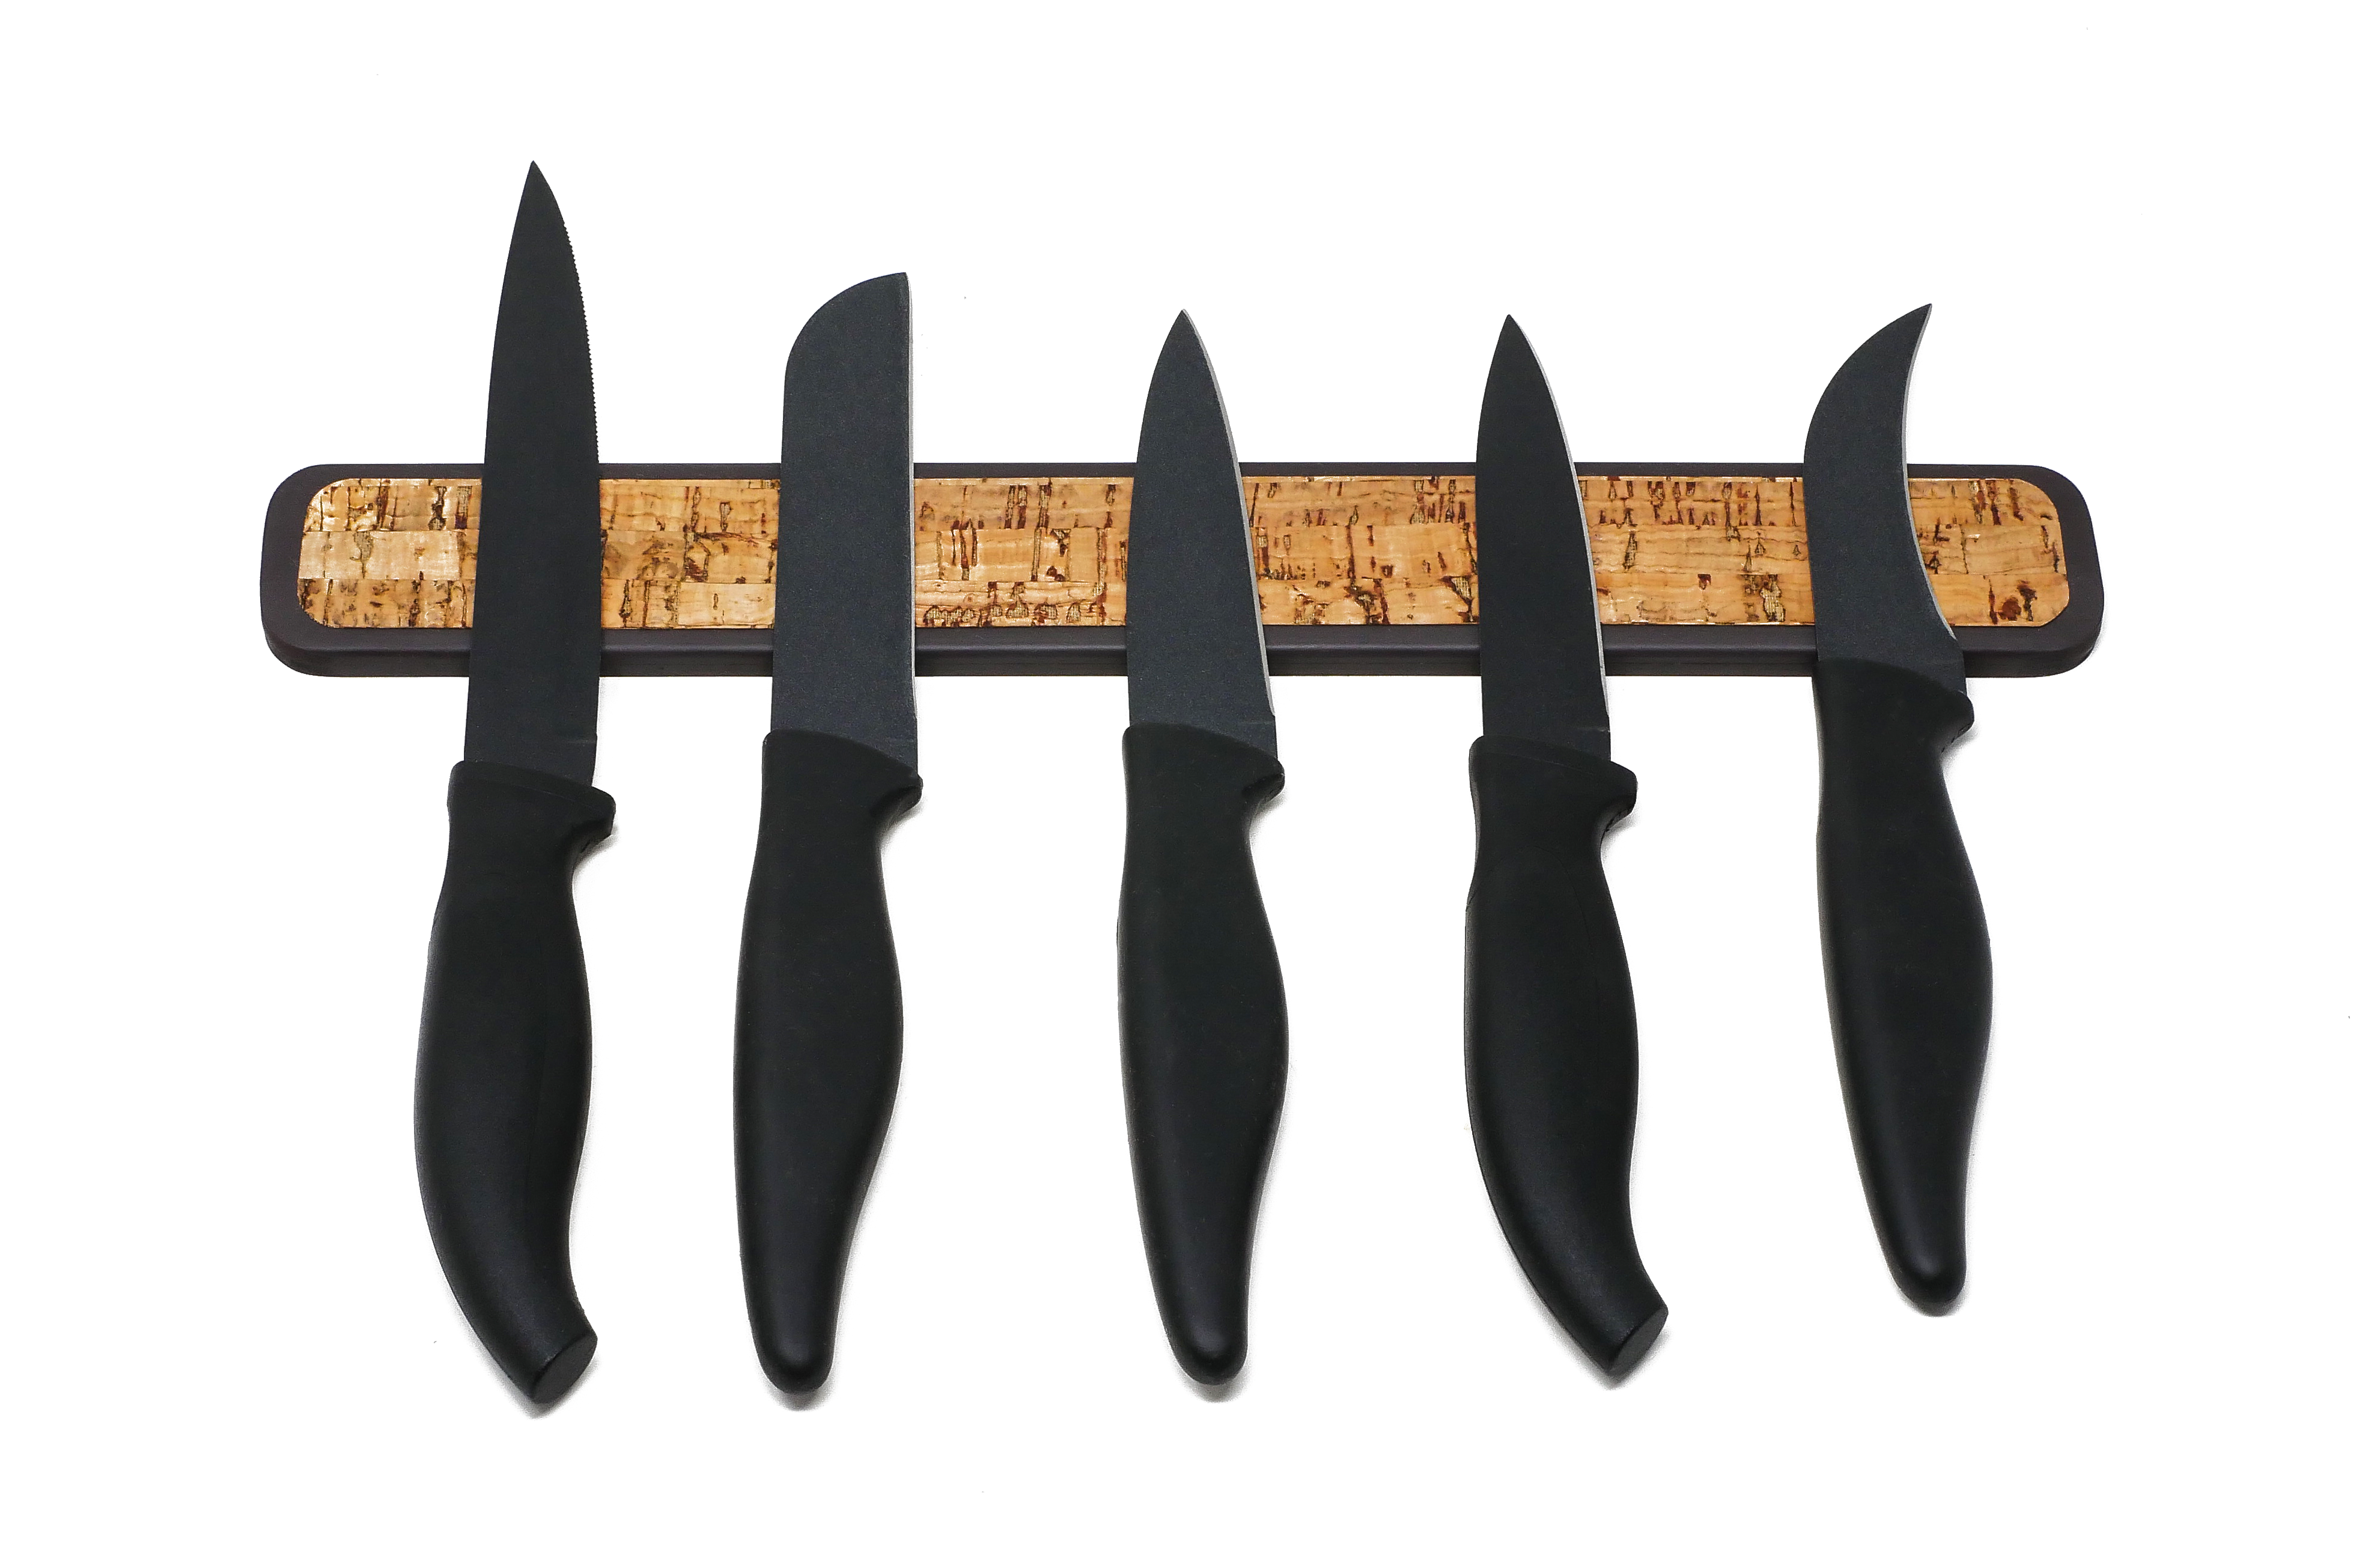 The 2 Sided Rubber Magnetic Knife Rack